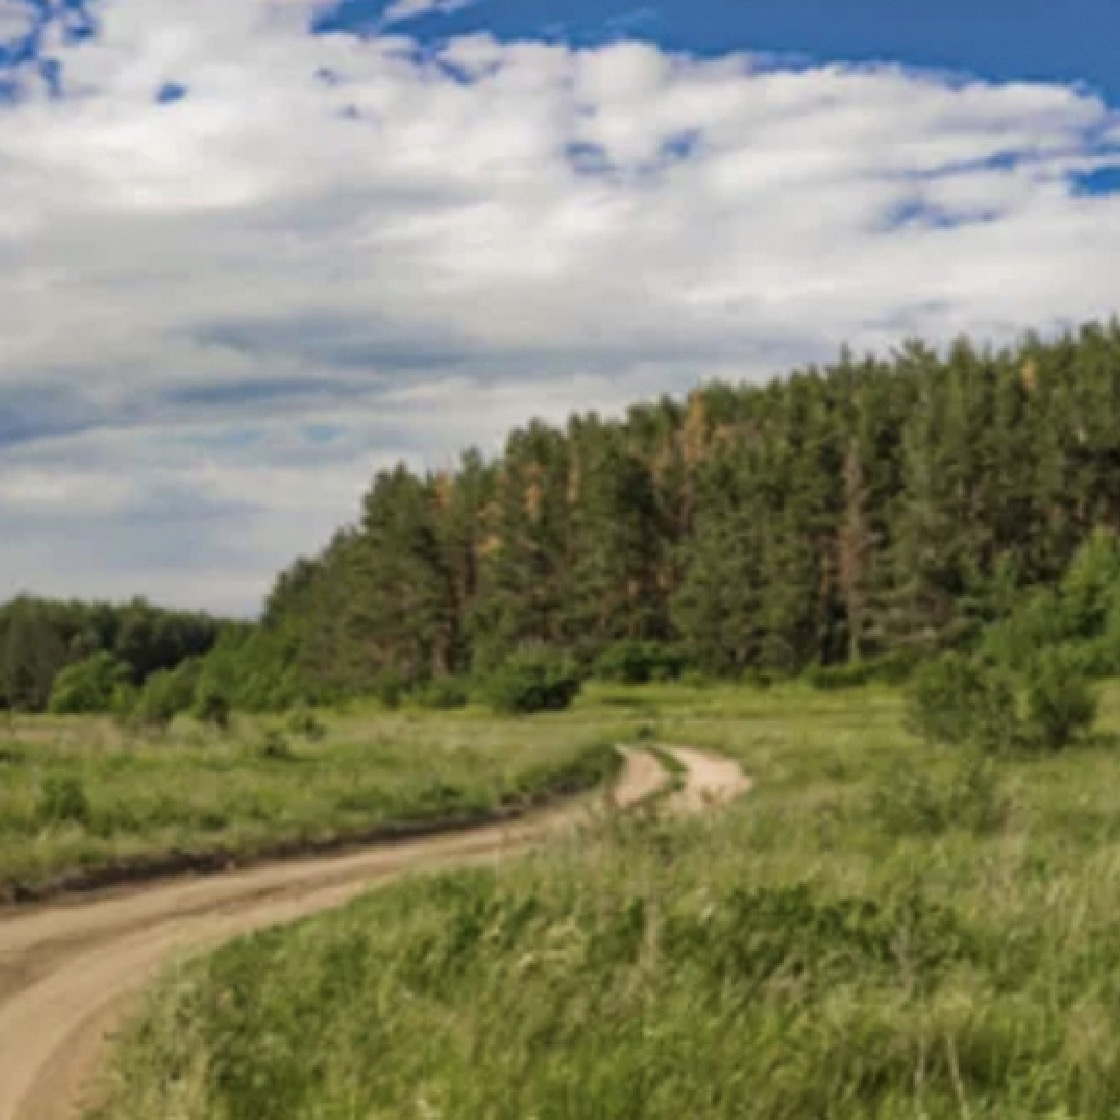 A dirt road winding through a meadow and forest